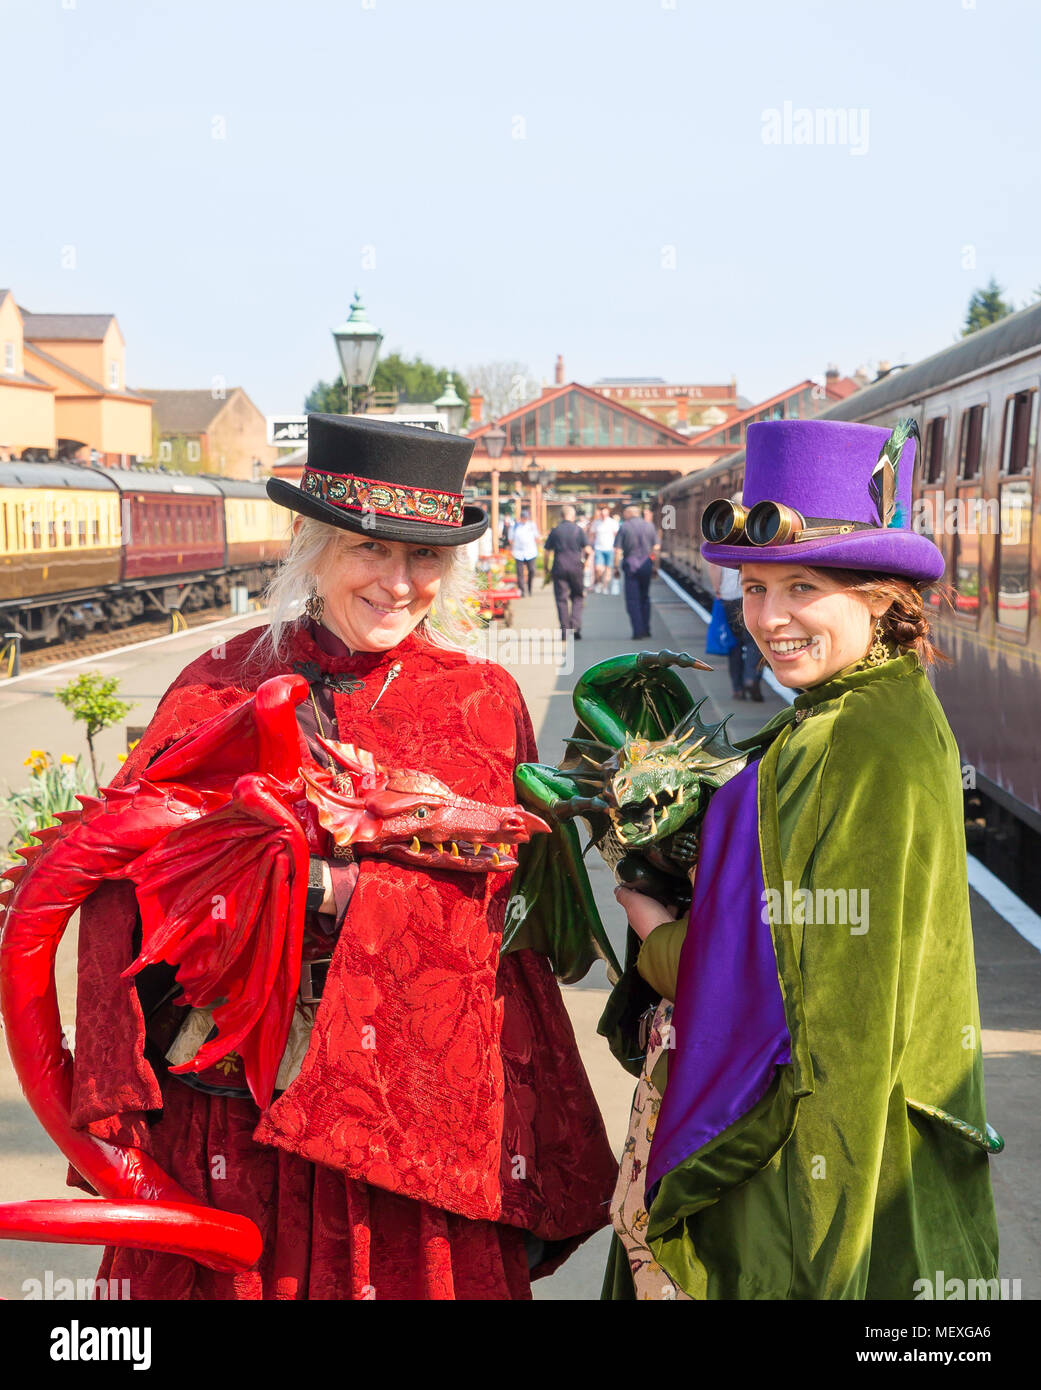 Two smiling females in fancy dress costume with hand-held, life-like dragon puppets on the platform at Kidderminster's Severn Valley Railway station. - Stock Image